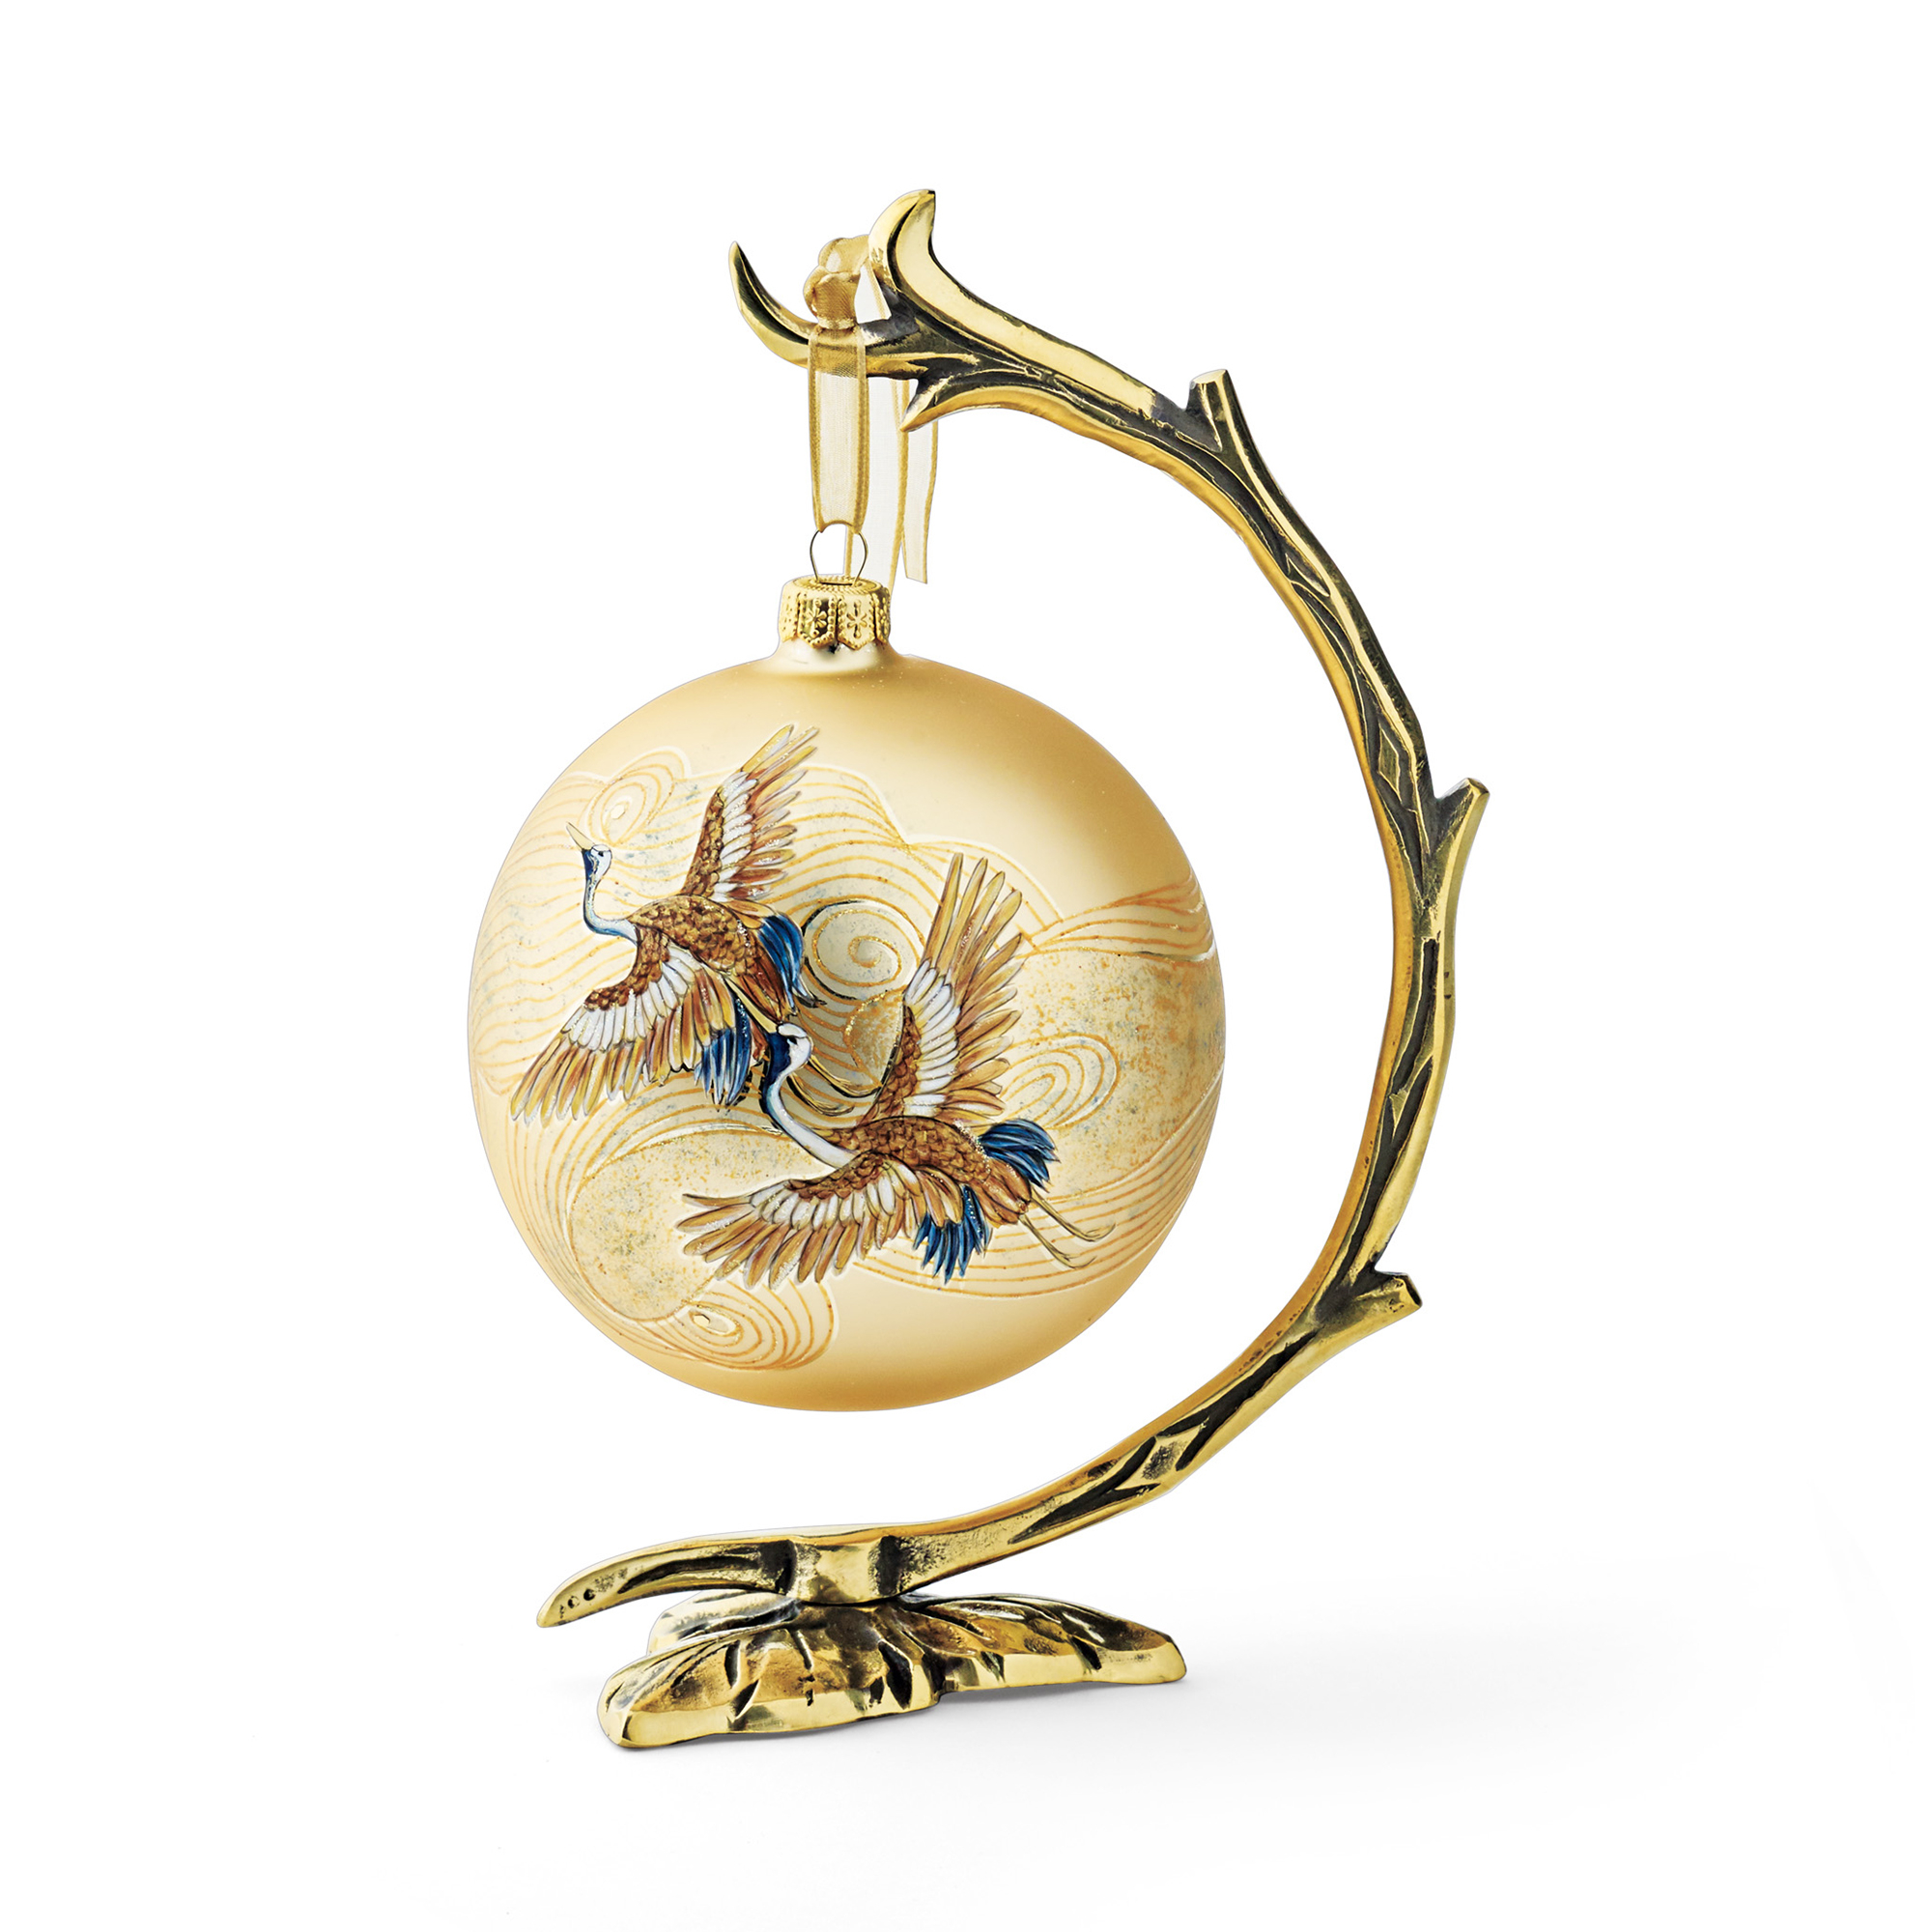 2017 Limited-Edition Crane Ball Ornament